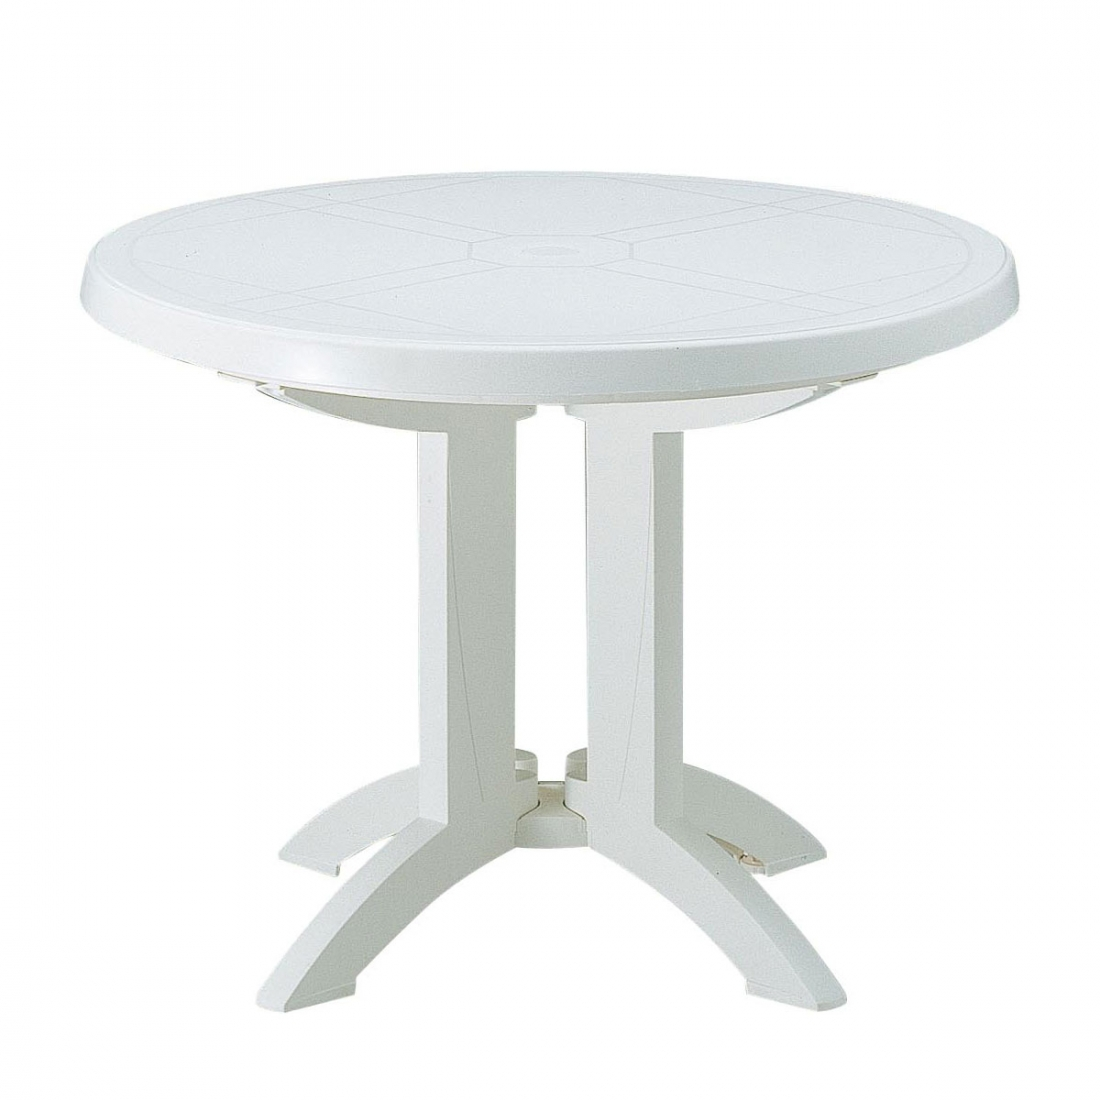 Table ronde de jardin vega grosfillex - Table de jardin blanche ...